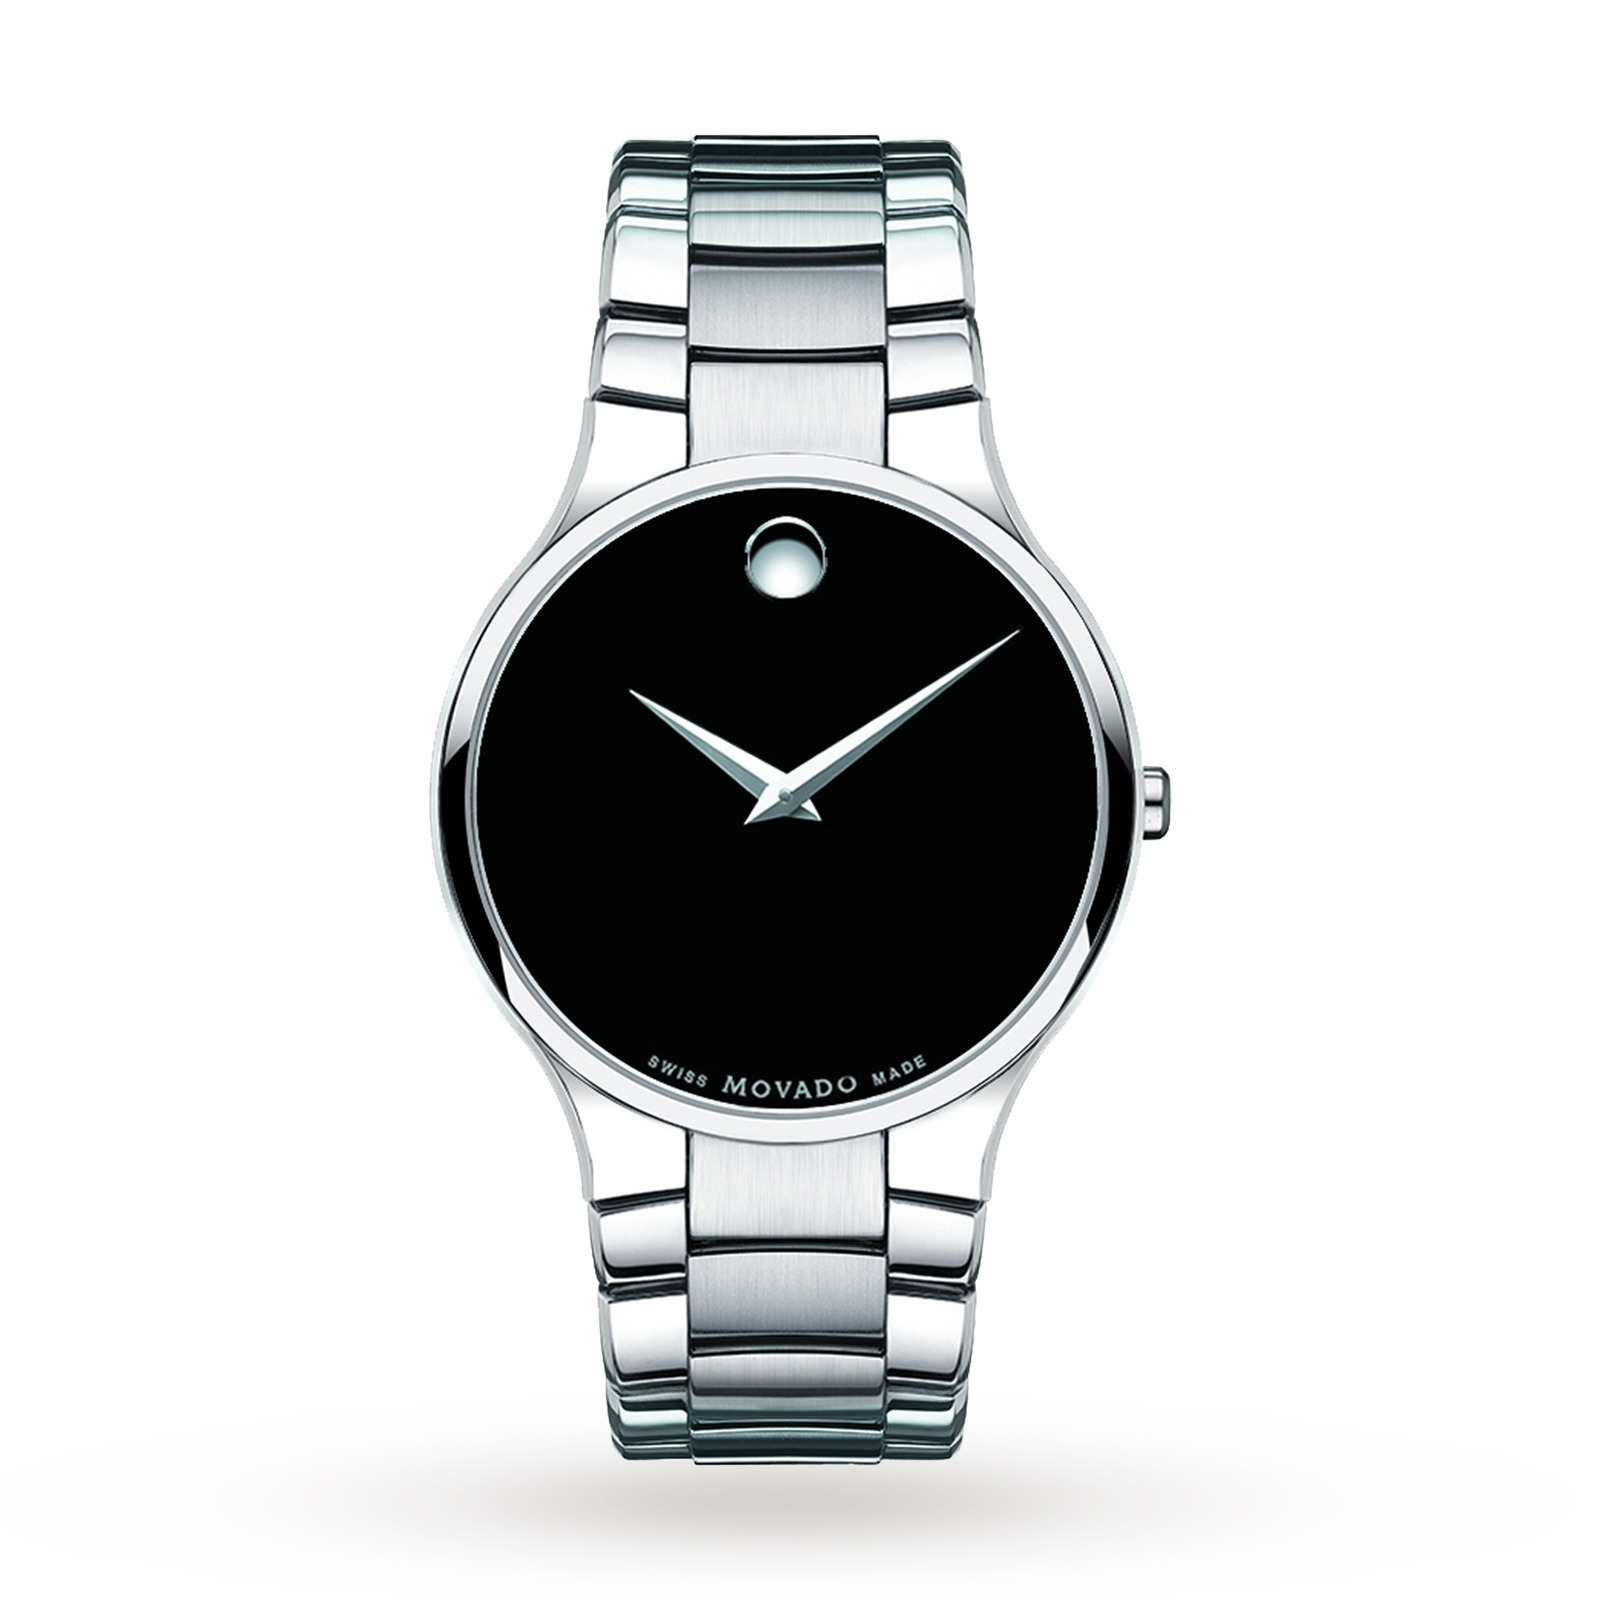 Movado Men's Serio Watch